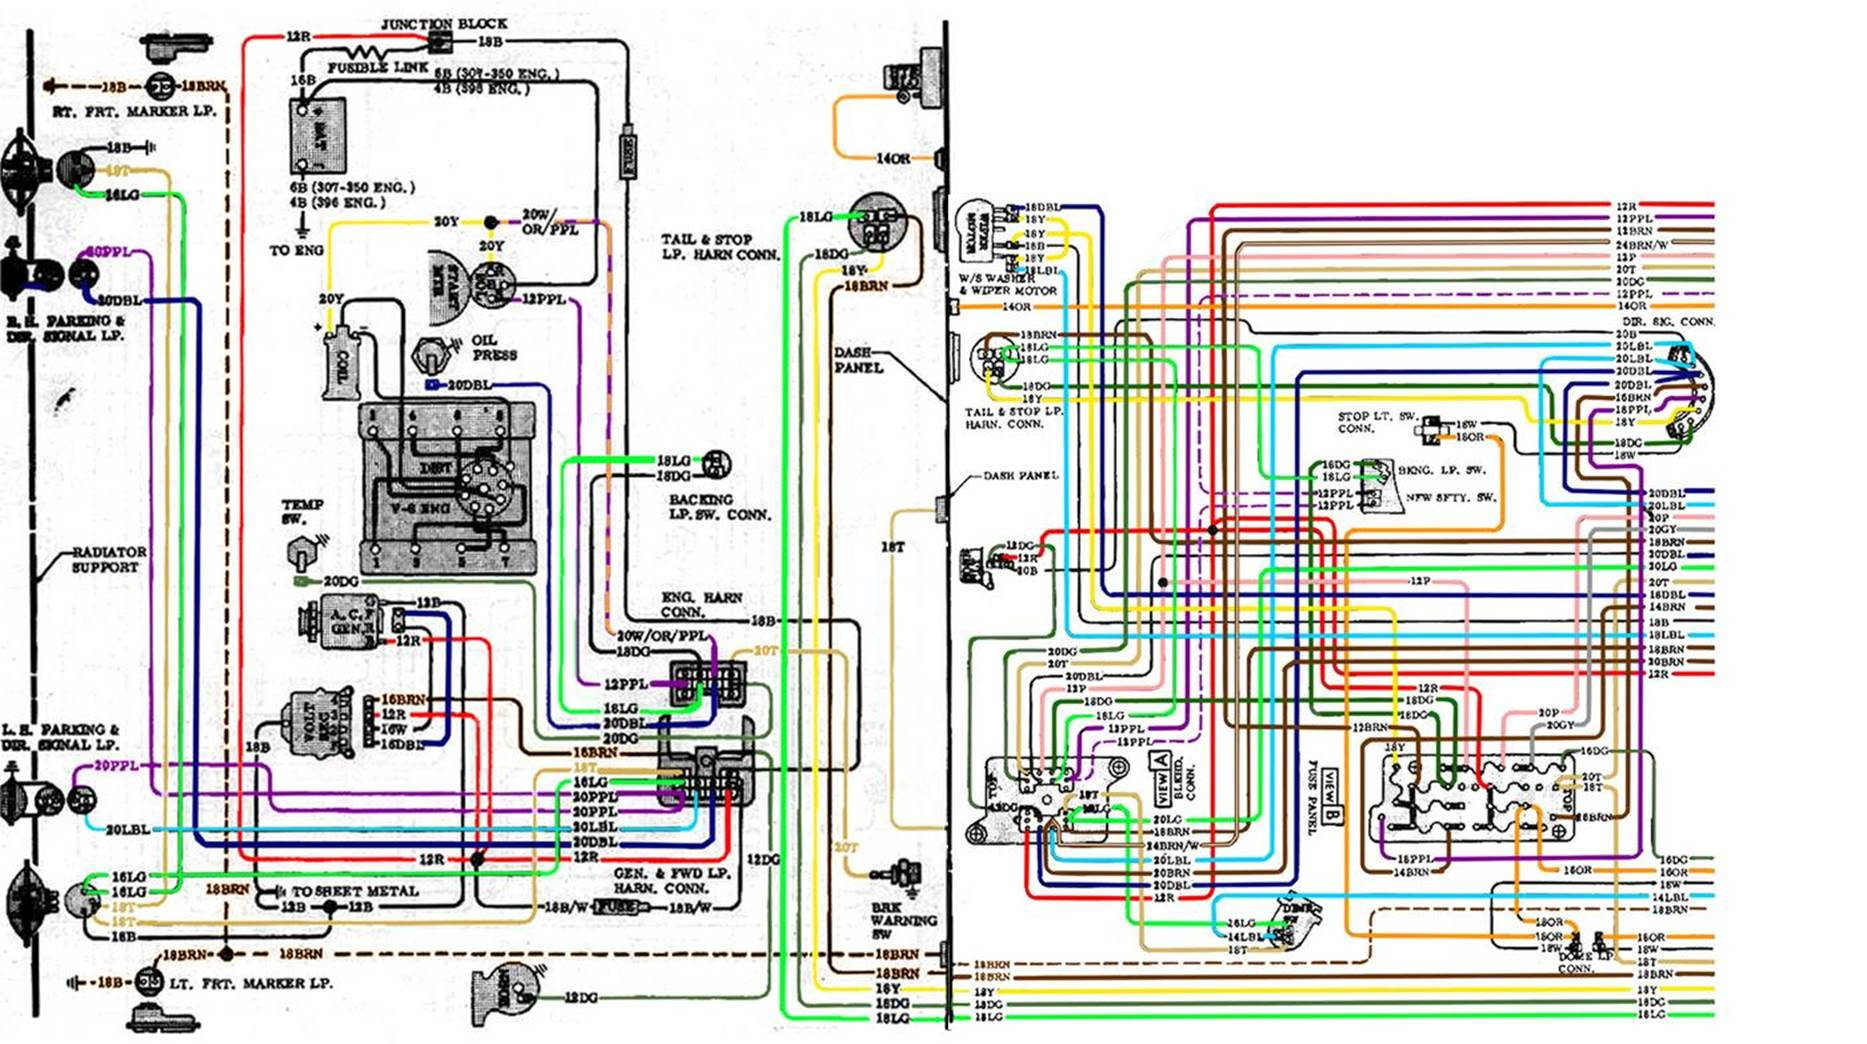 image002 67 72 chevy wiring diagram painless wiring schematics at cos-gaming.co